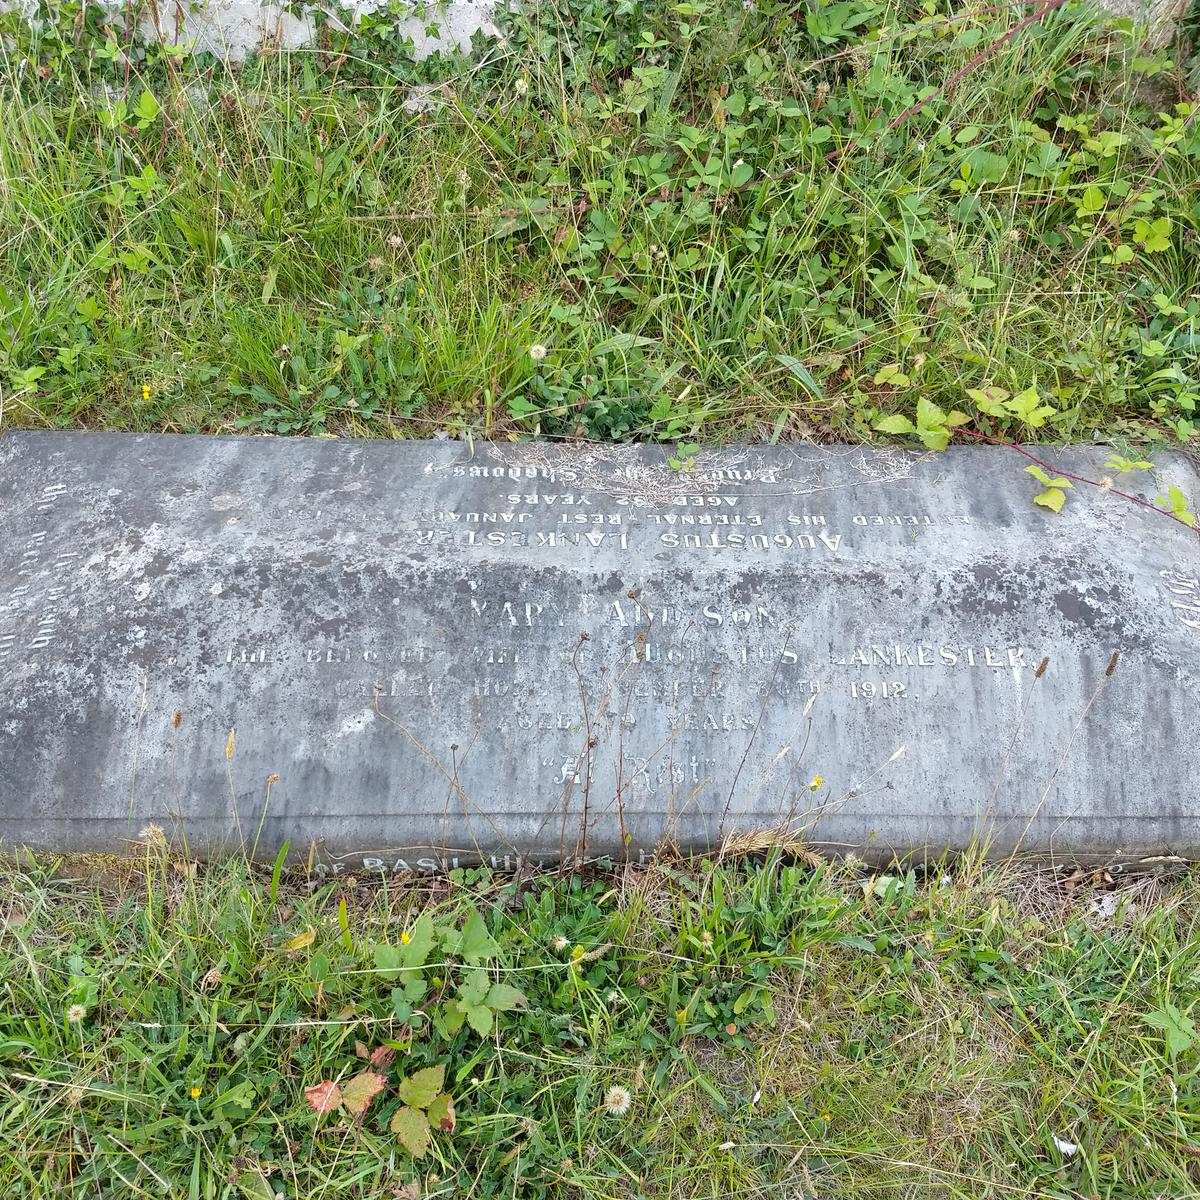 Grave of Mary Addison & Augustus Lankester